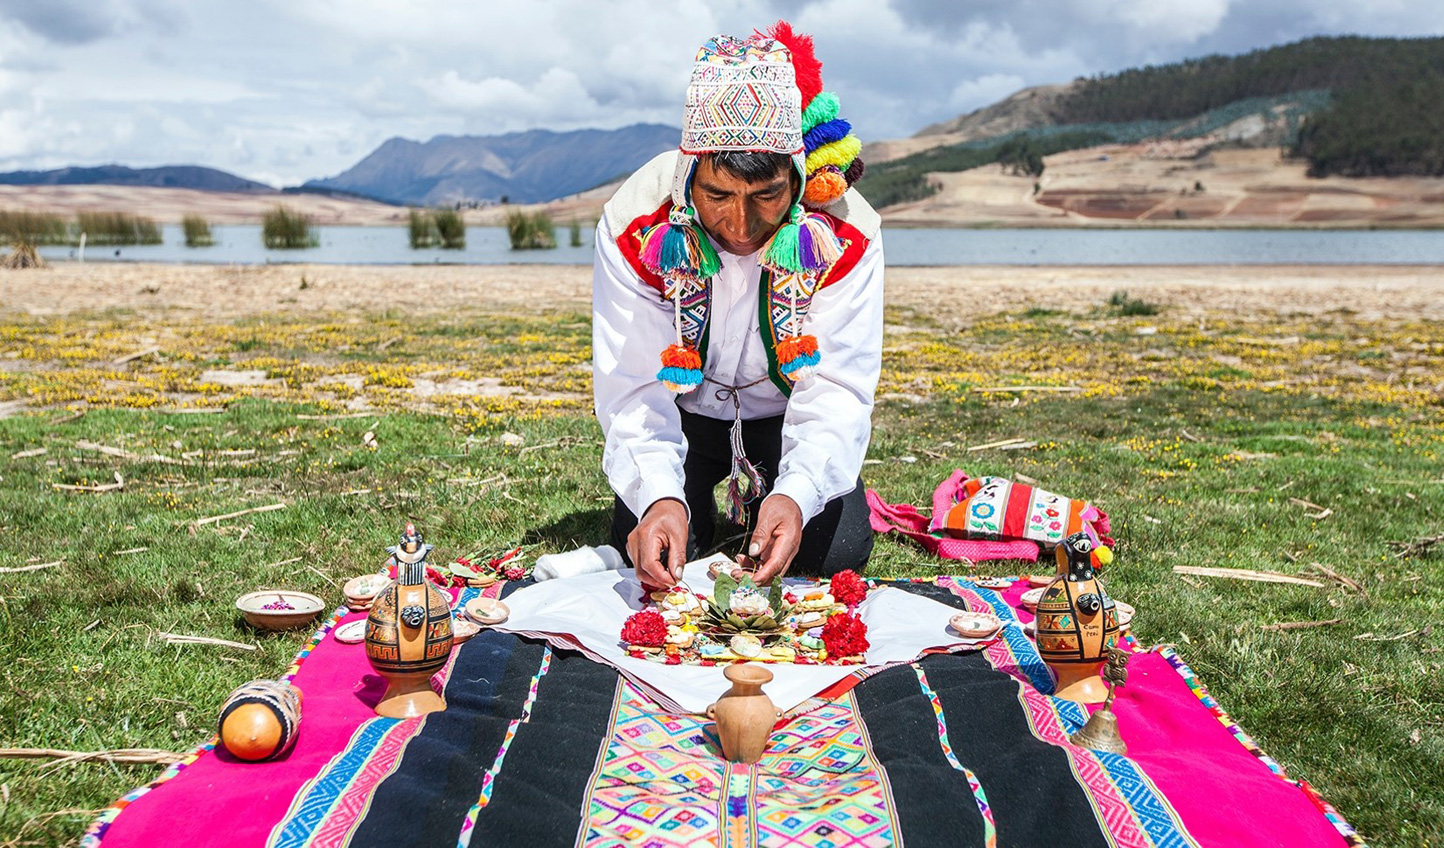 Give thanks to pachamama in an earth tribute ceremony